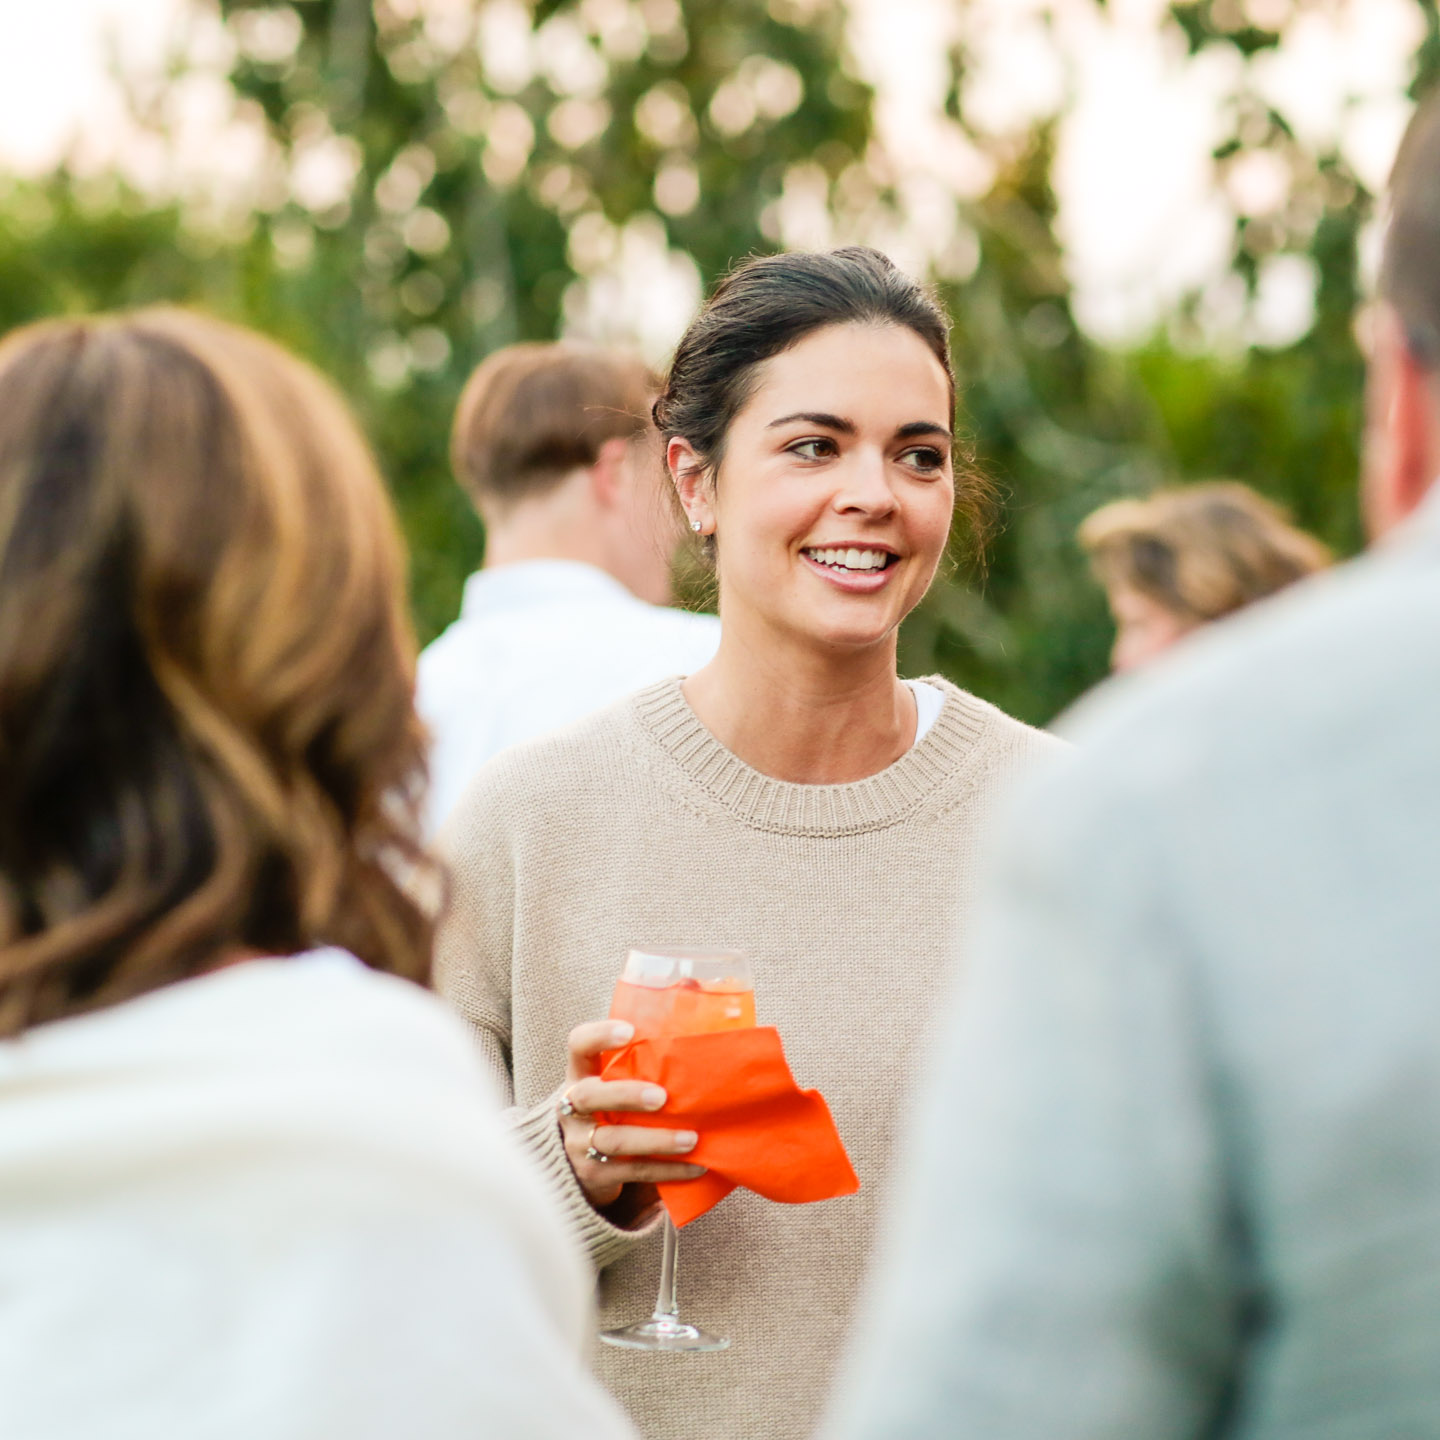 2eric_striffler_photography_event_party-5.jpg